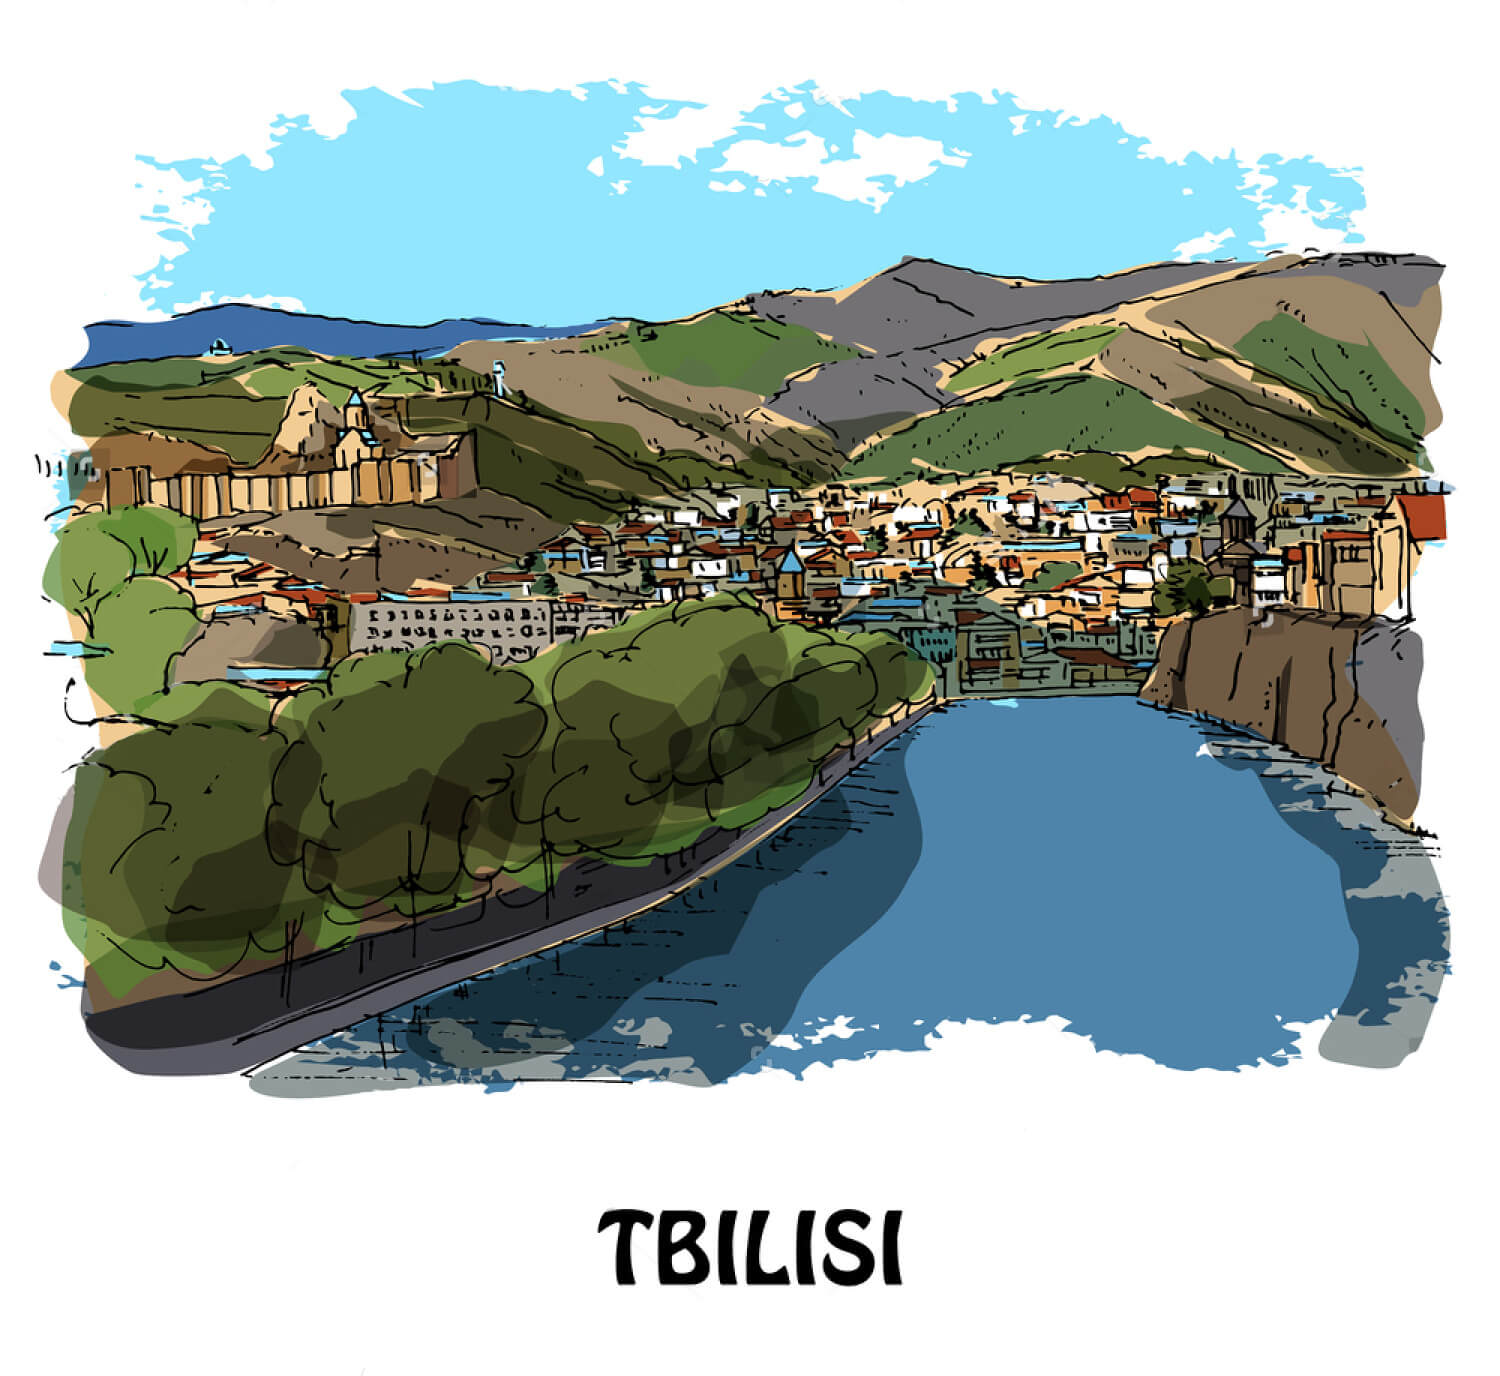 Tbilisi-tiflis-georgia-north-caucasus-touringo-vakantie-in-georgie